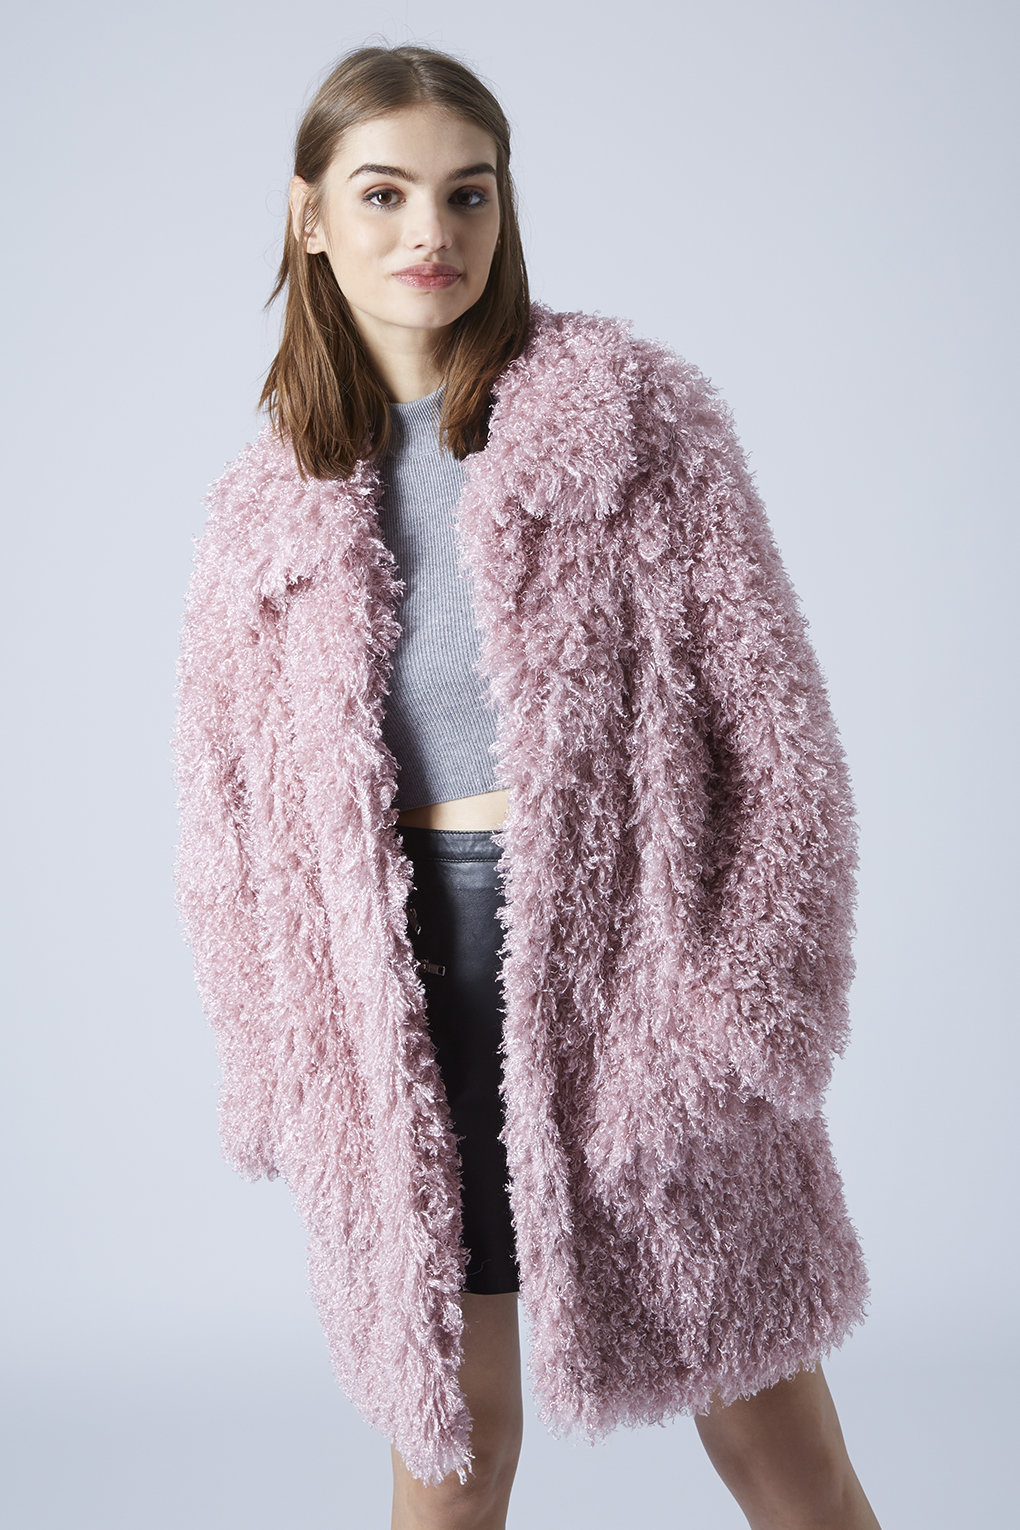 Topshop Womens De Fur Faux Fur Coat by Unreal Fur - Pink in Pink ...